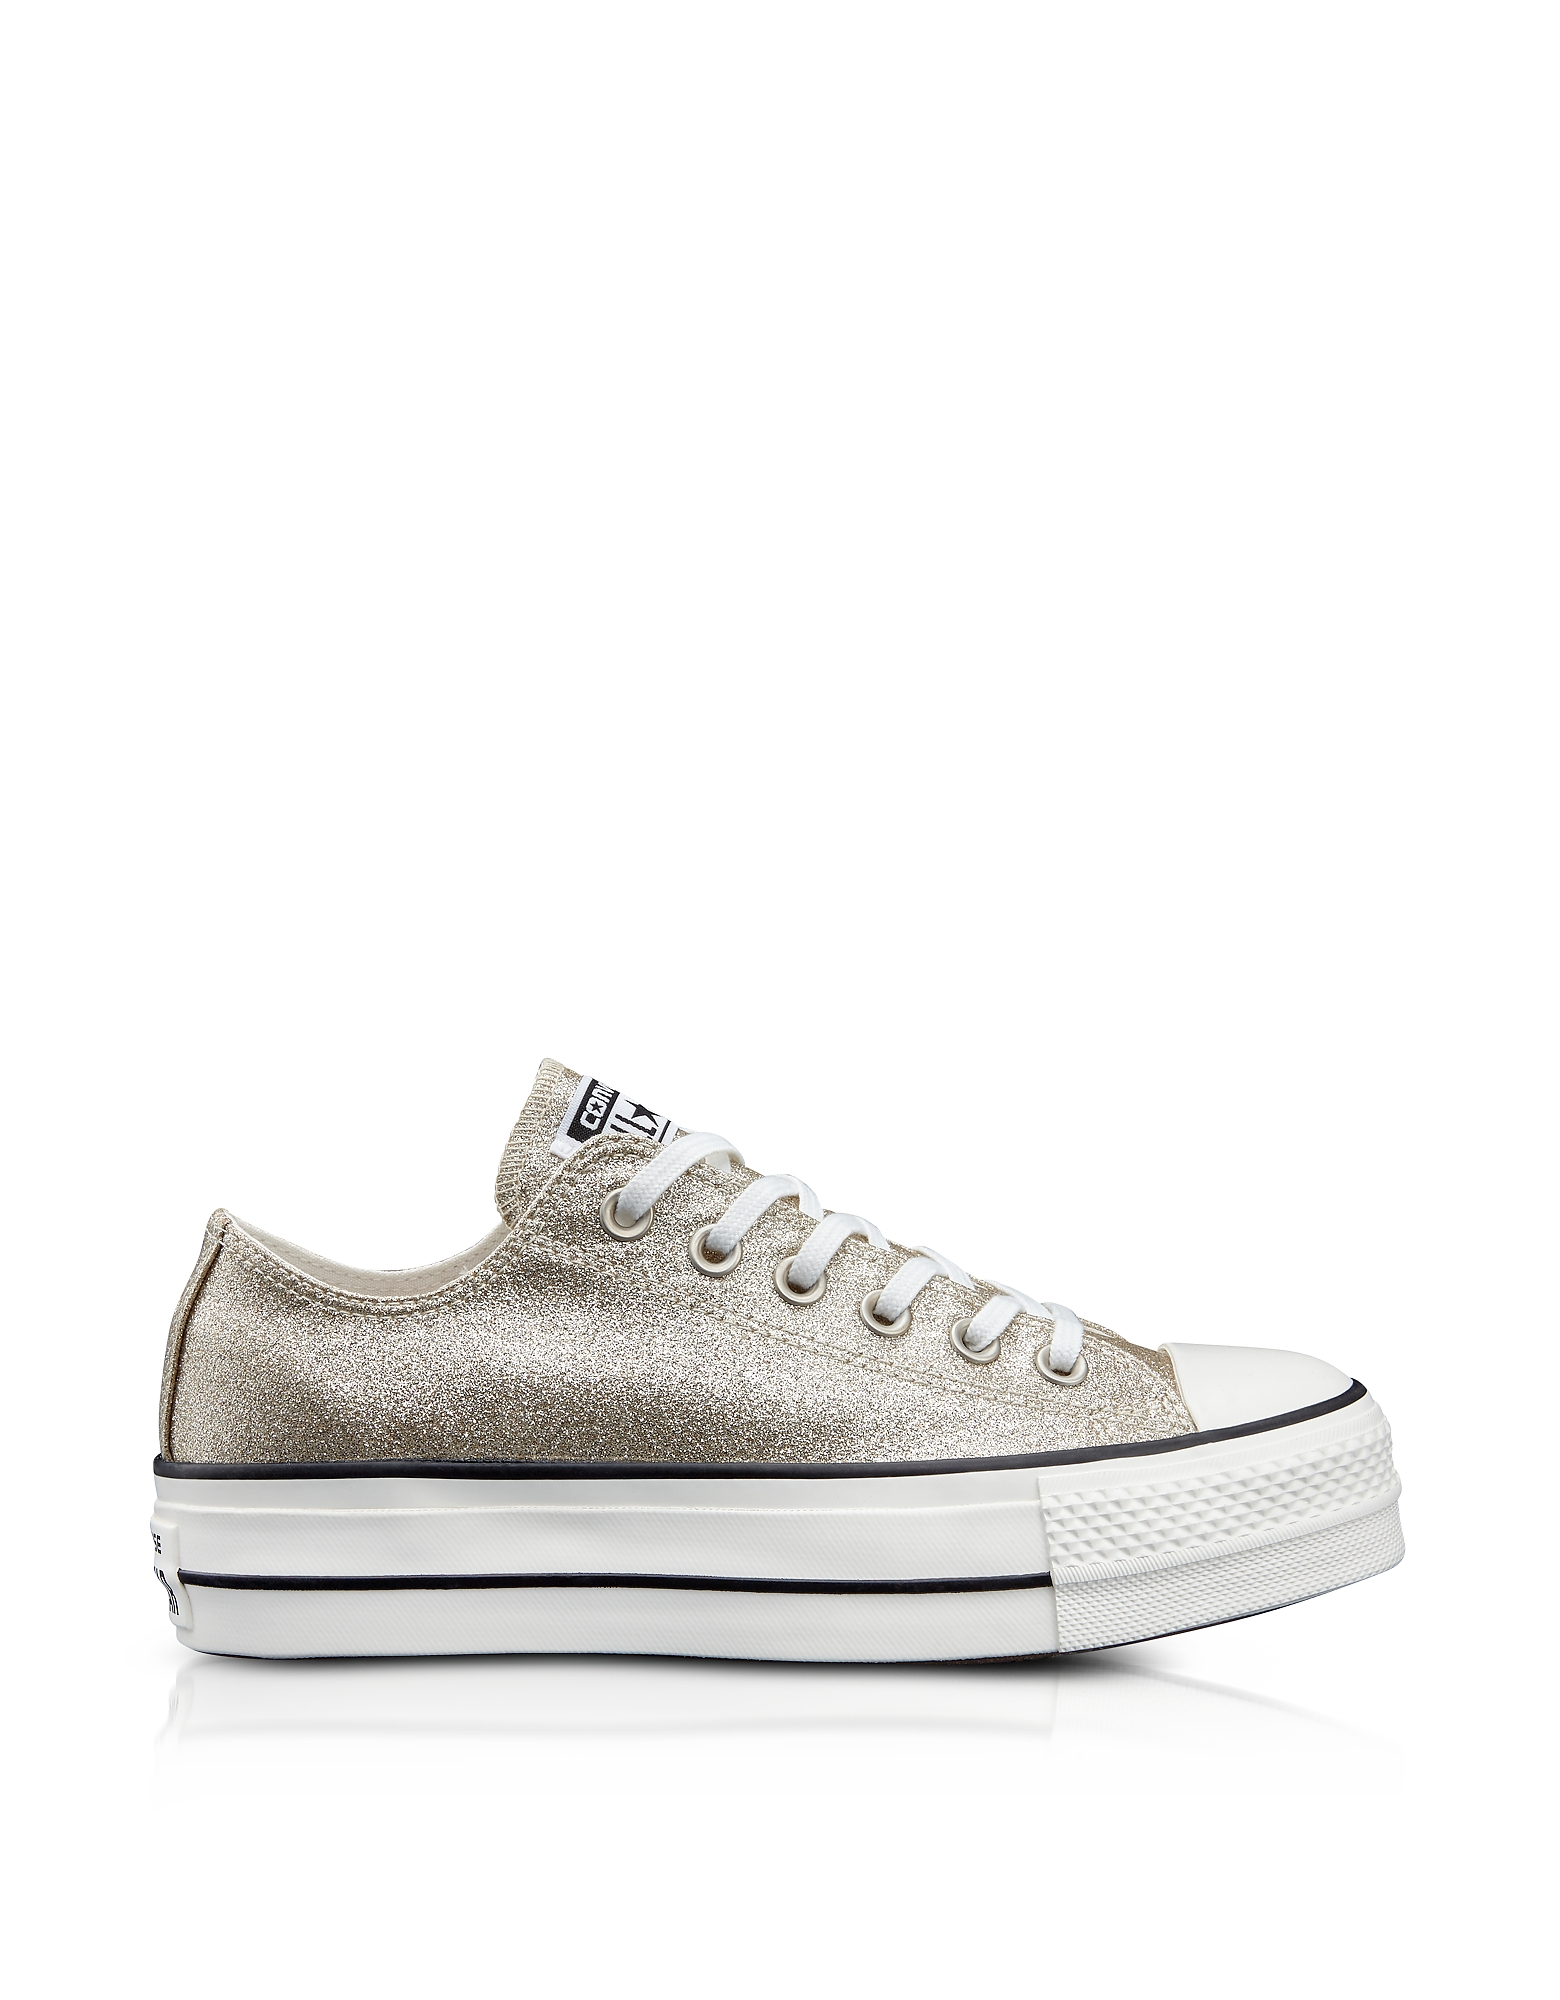 Converse Limited Edition Shoes, Chuck Taylor All Star High Light Gold Glitter Textured Canvas Flatfo